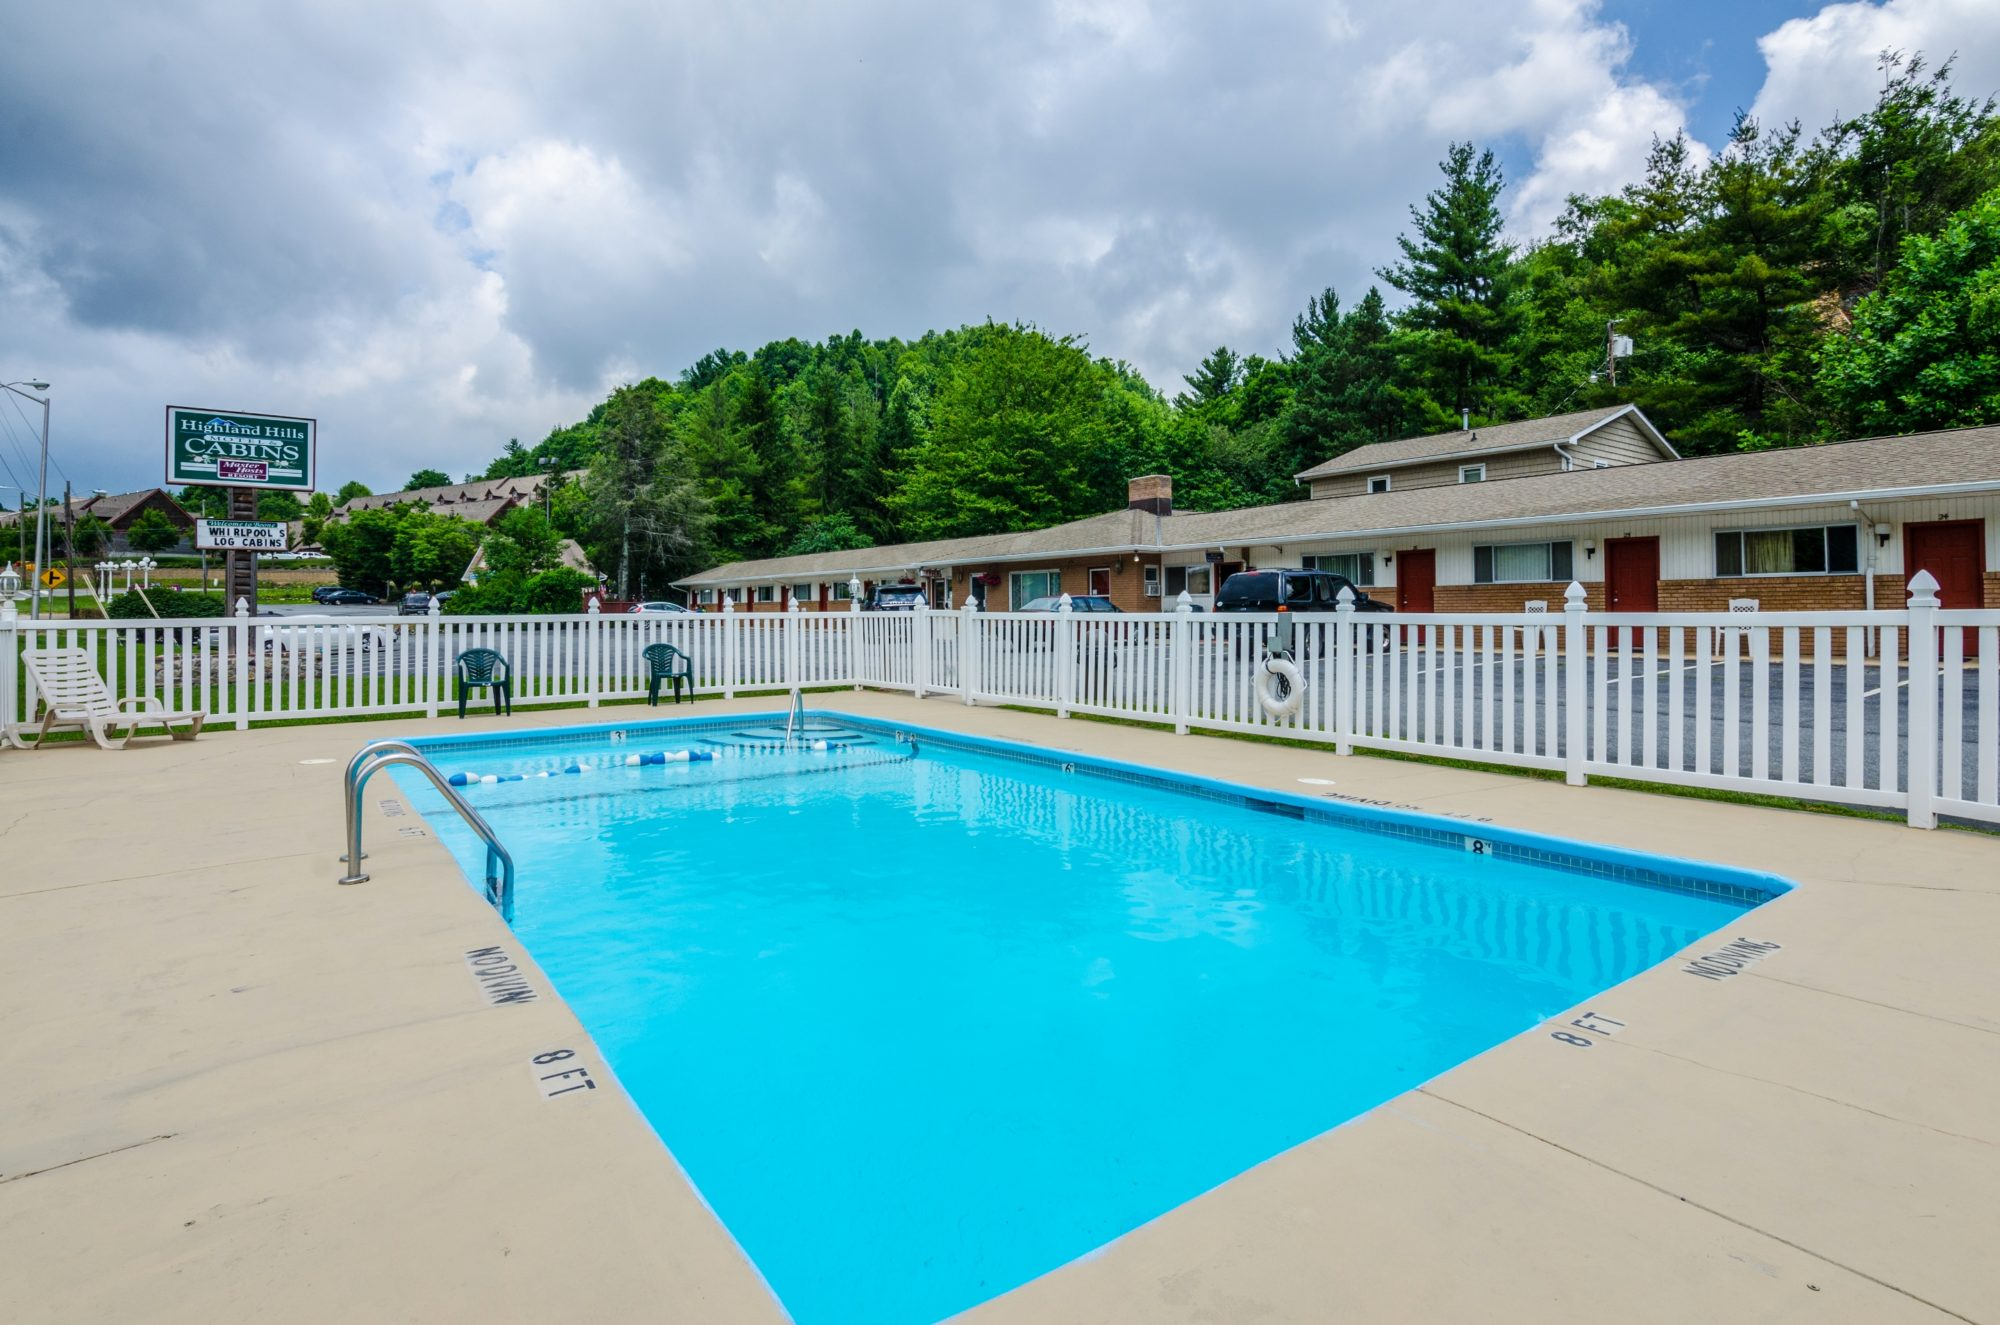 outdoor pool with concrete deck and patio furniture, white safety fencing and life saver, motel signage, motel rooms and parking area